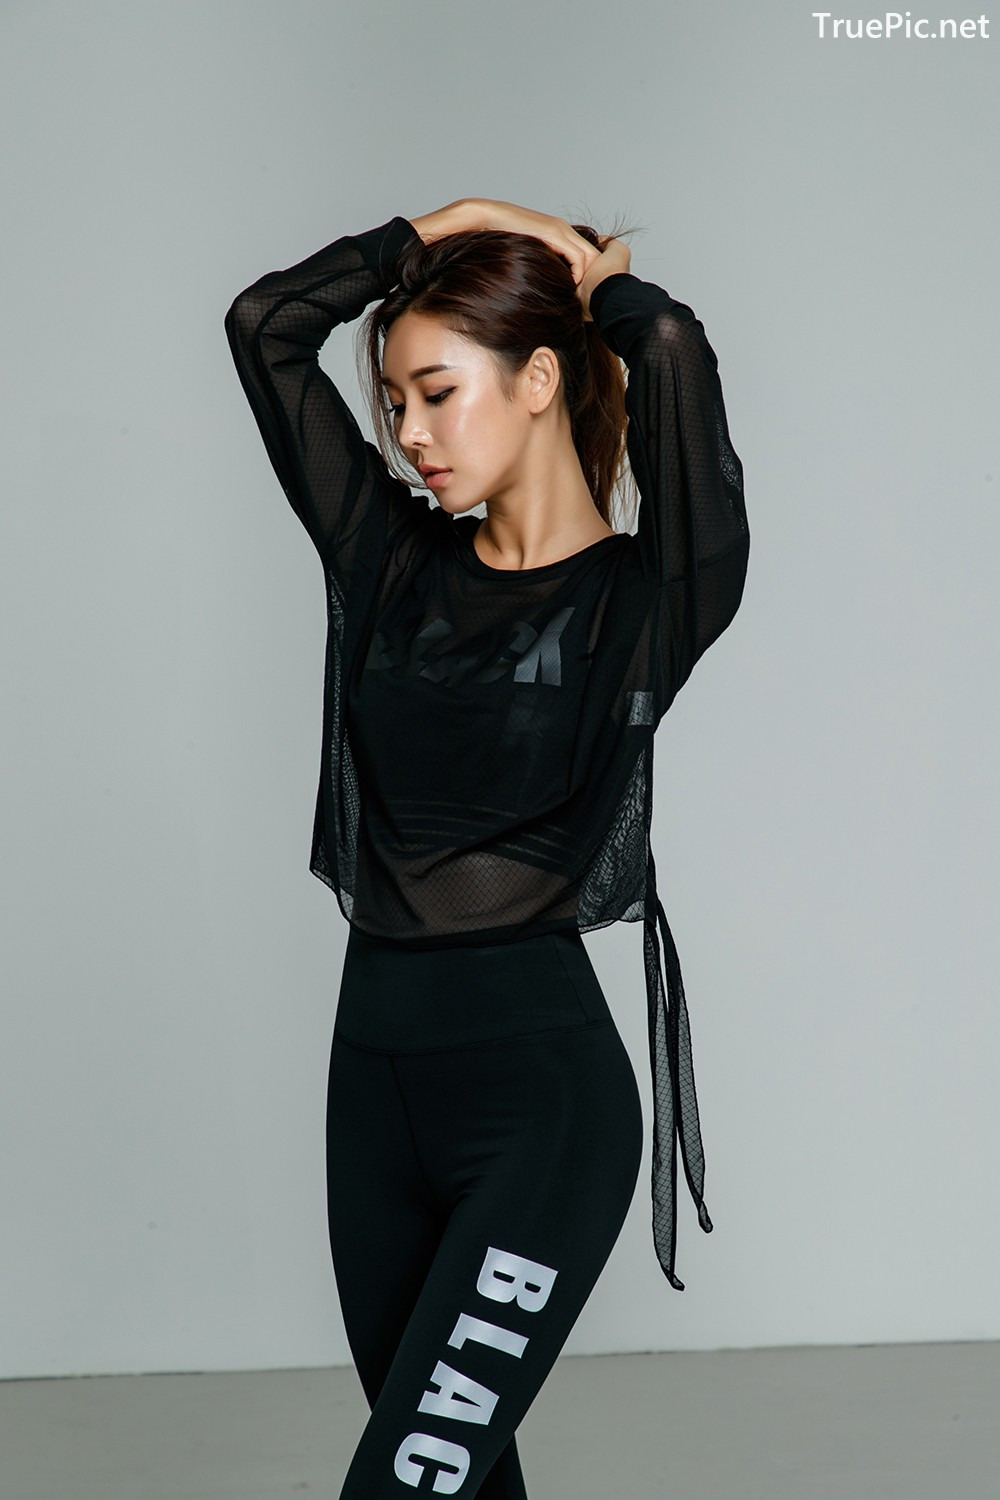 Image-Korean-Fashion-Model-Park-Da-Hyun-Celebrity-Black-Indoor-and-Outdoor-Fitness-Set-TruePic.net- Picture-6